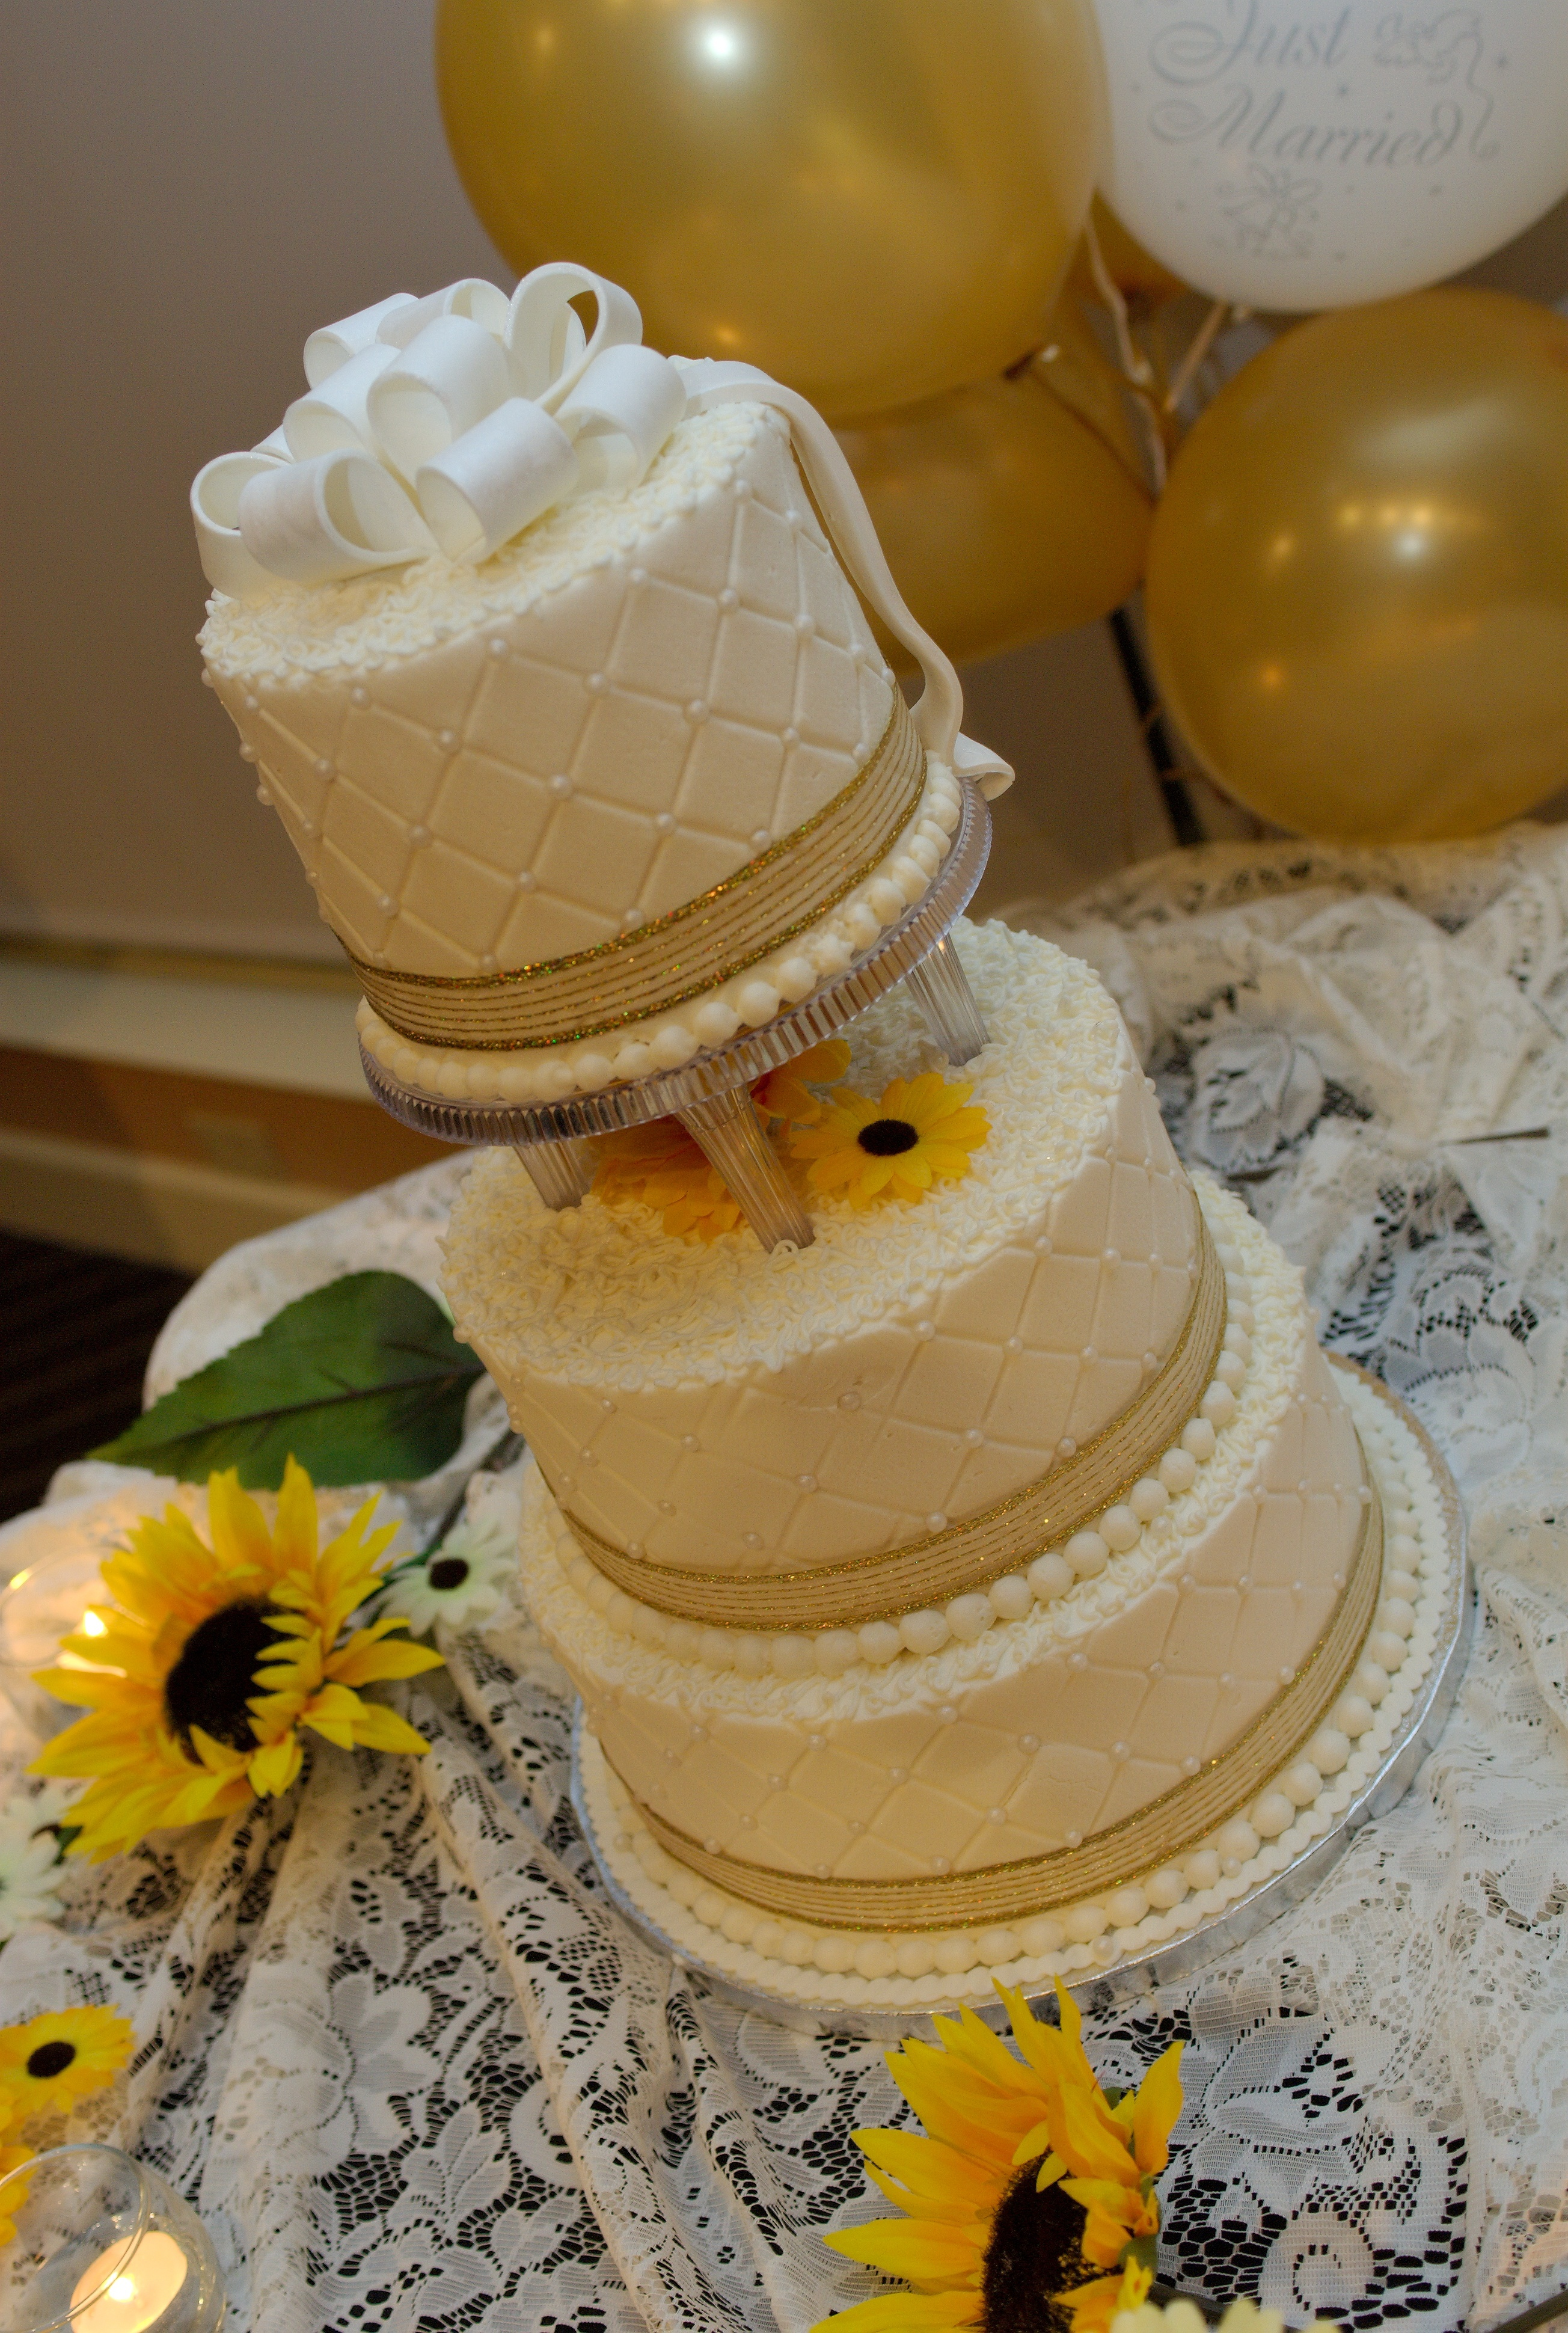 Cakes, gold, cake, Wedding, Birthday, Occasional cakes llc